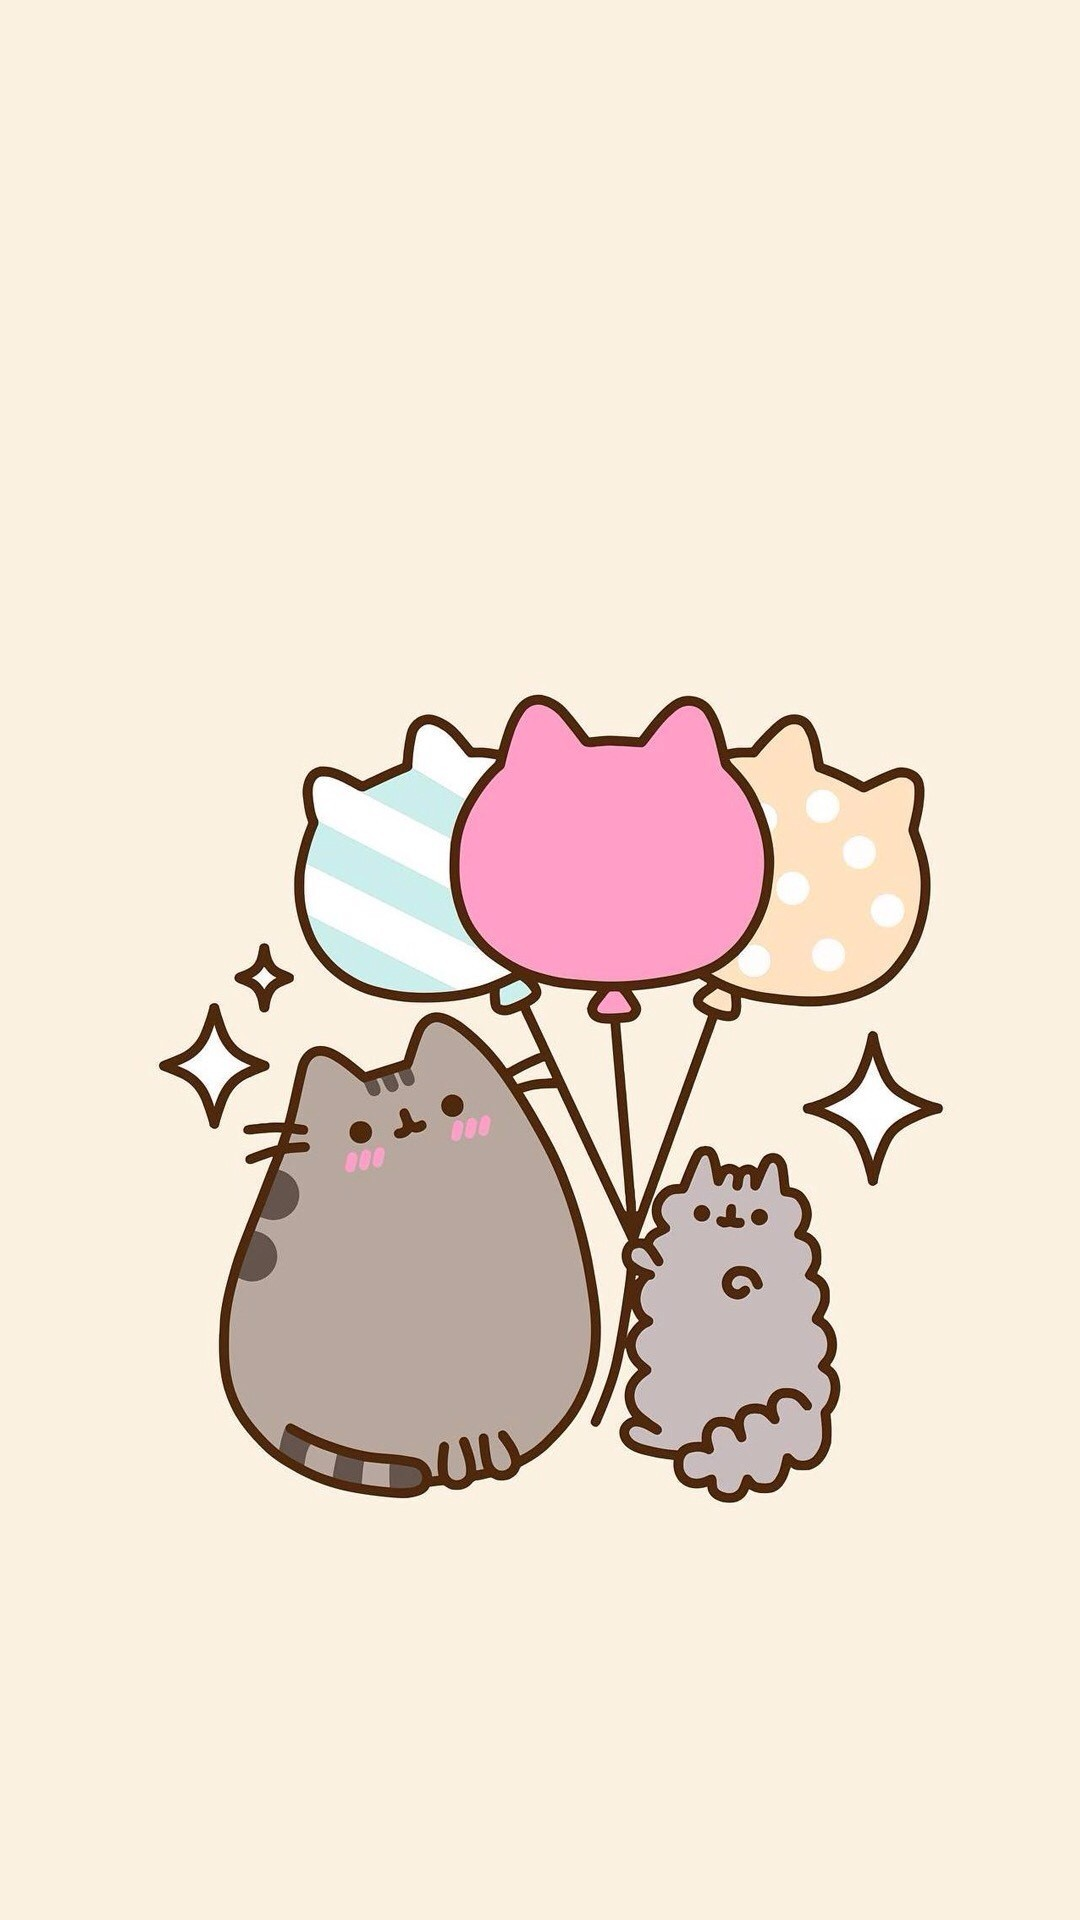 Pusheen wallpapers 56 images - Cat wallpaper cartoon ...